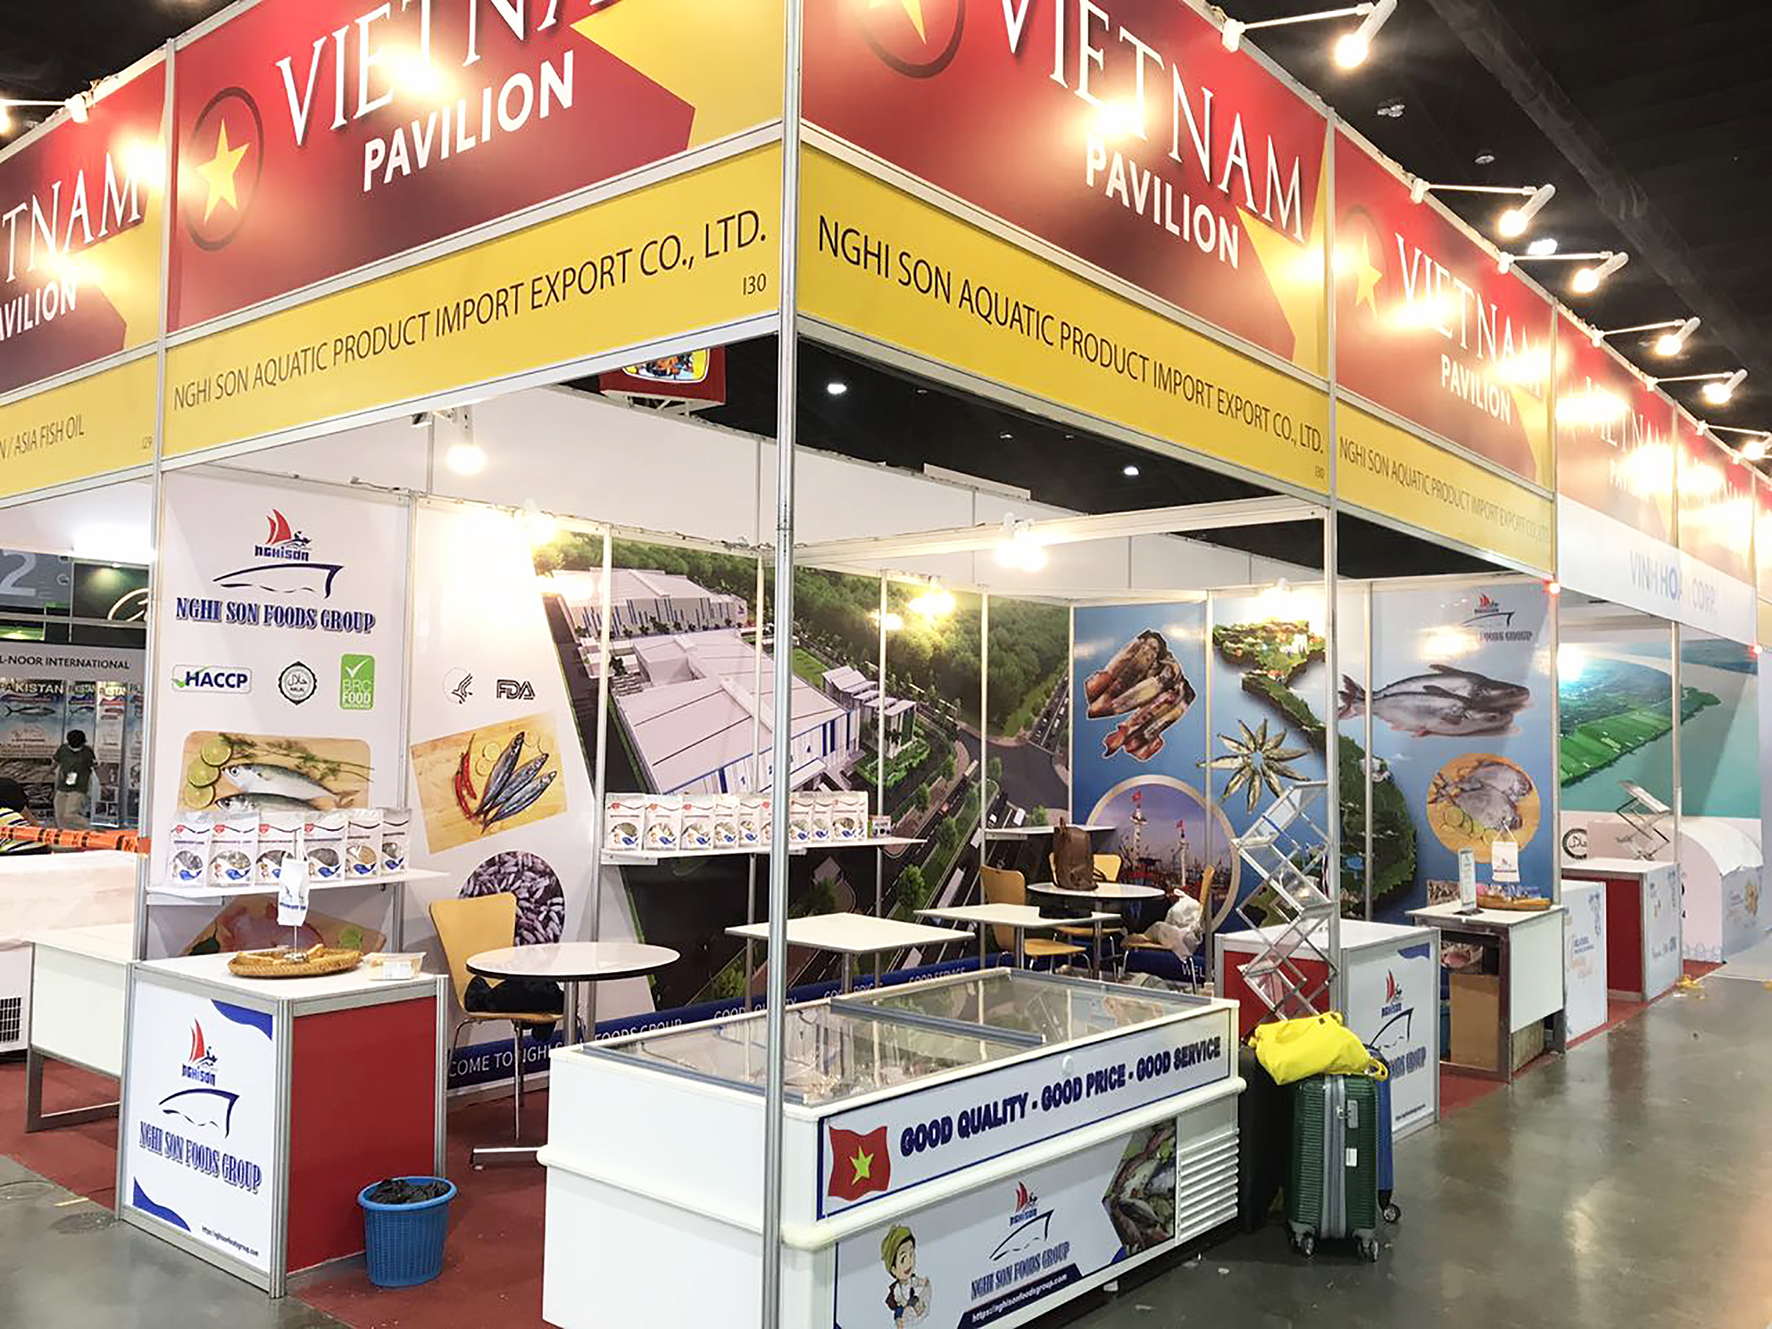 nghi son foods group